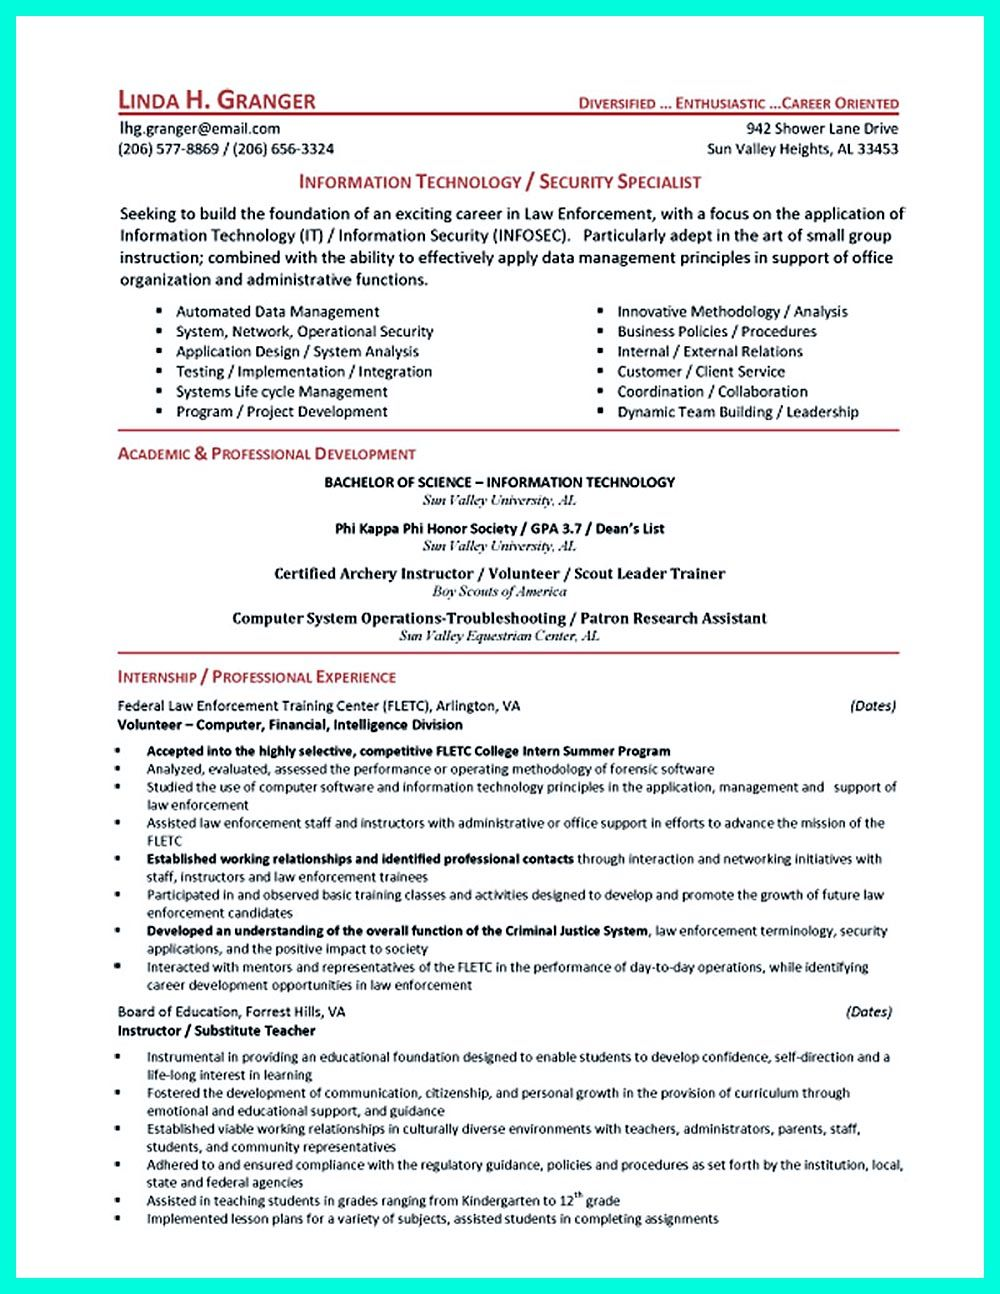 powerful cyber security resume to get hired right away examples student cybersecurity Resume Cybersecurity Resume Sample